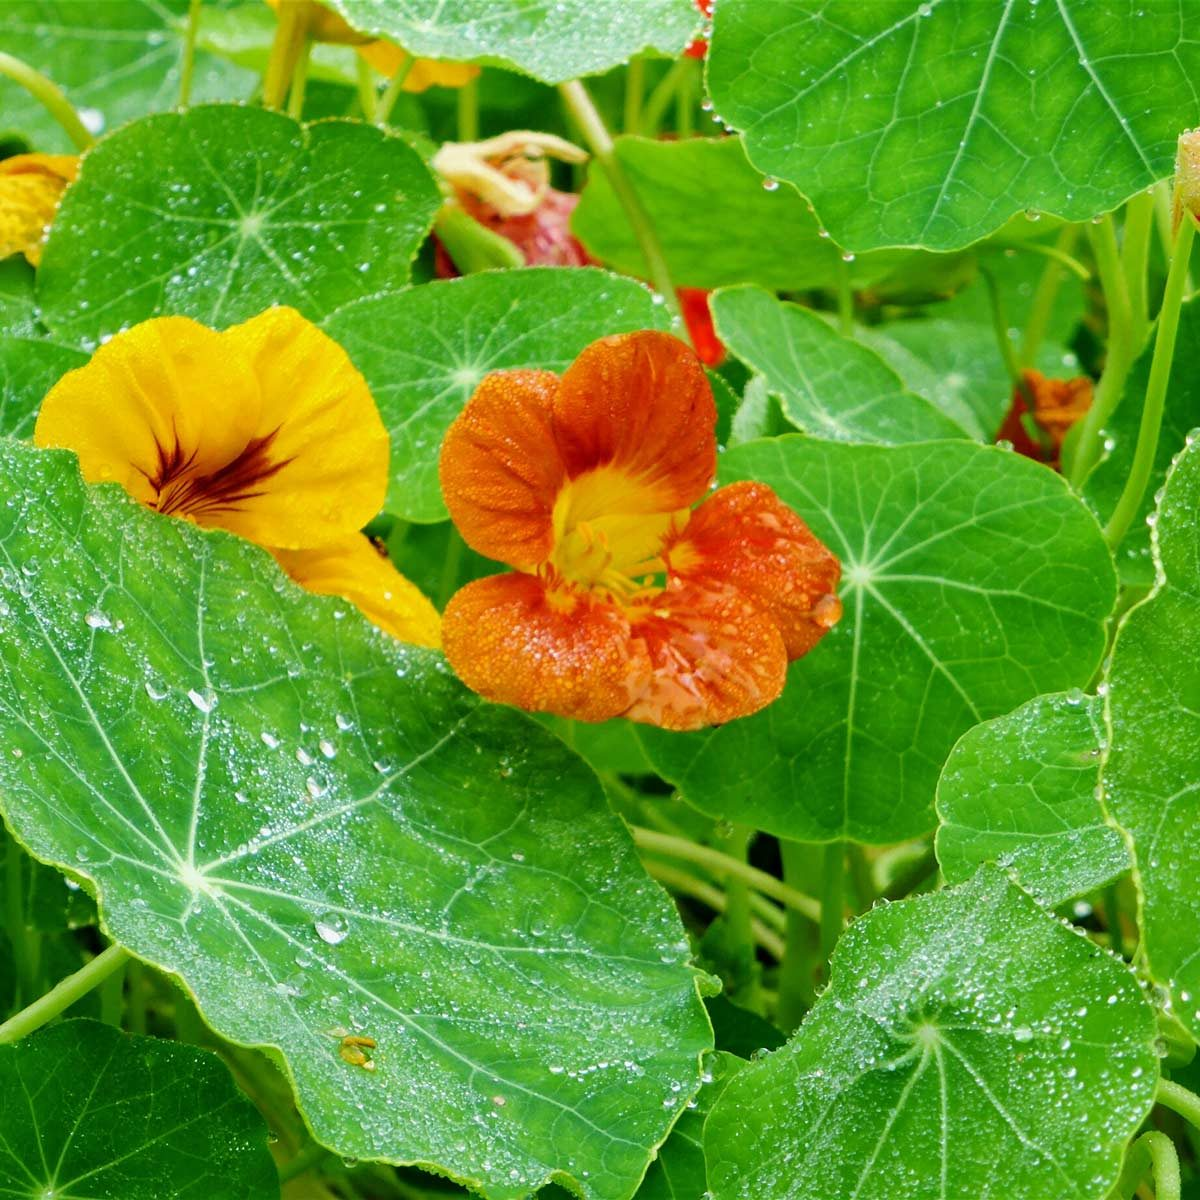 Close-Up Of Wet Nasturtiums And Leaves